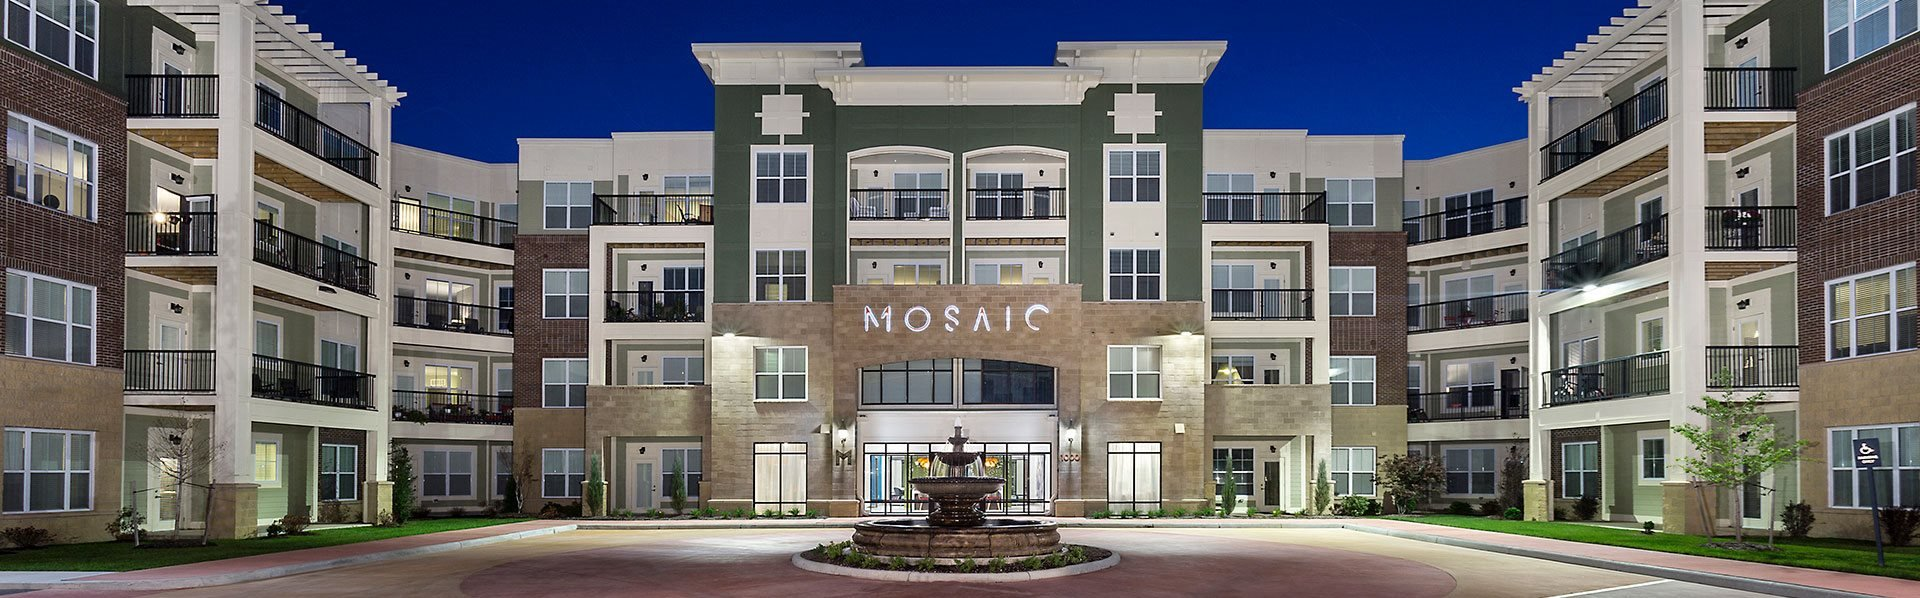 Exterior View of Mosaic at Levis Commons Apartments with fountain in Perrysburg, OH near Toledo